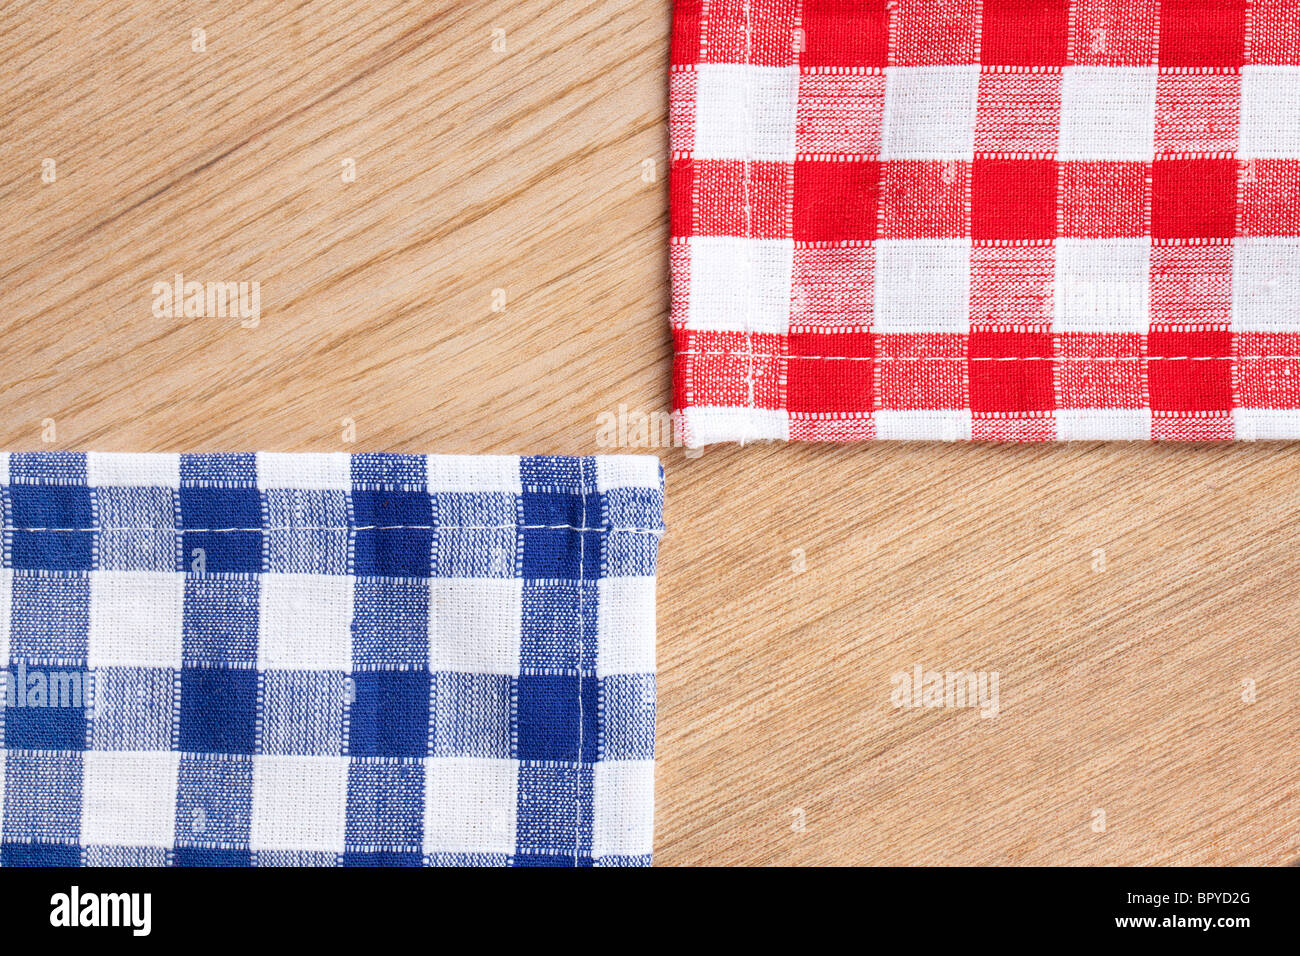 Genial The Checkered Tablecloth On Wooden Table   Stock Image